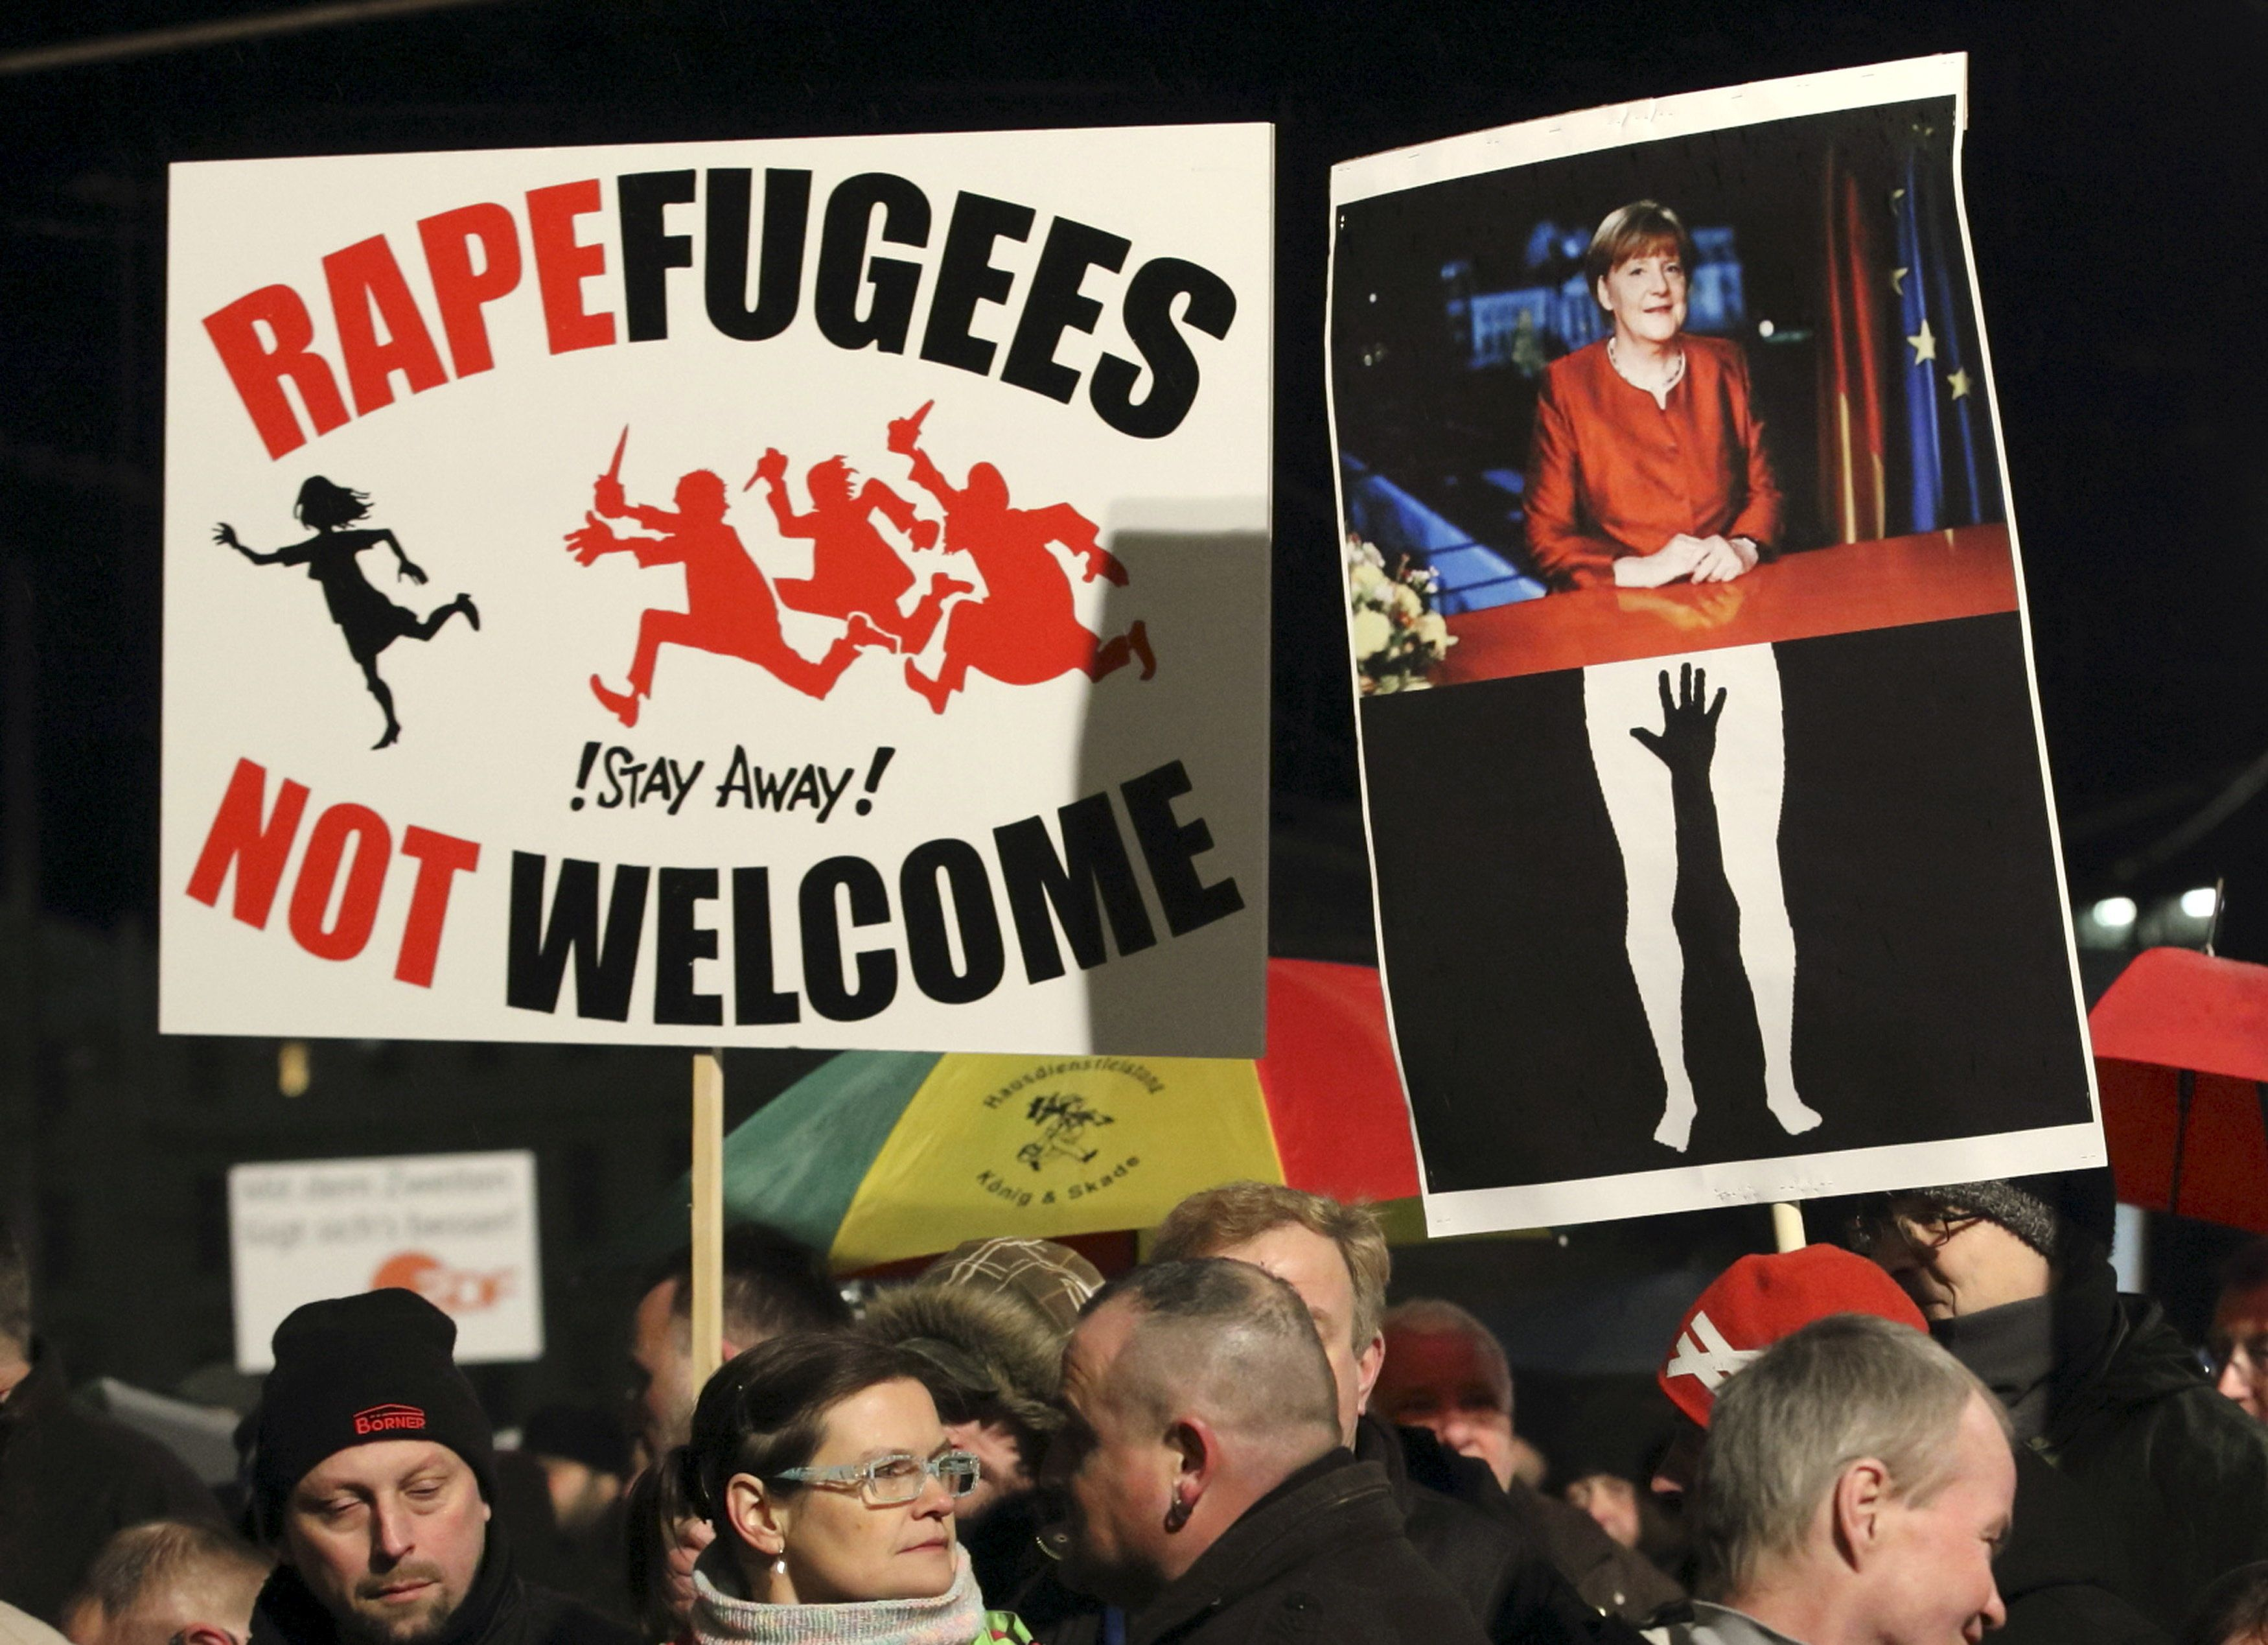 Members of LEGIDA, the Leipzig arm of the anti-Islam movement Patriotic Europeans Against the Islamisation of the West (PEGIDA), hold a placard showing German Chancellor Angela Merkel (R) as they take part in a rally in Leipzig, Germany, January 11, 2016. REUTERS/Fabrizio Bensch TEMPLATE OUT